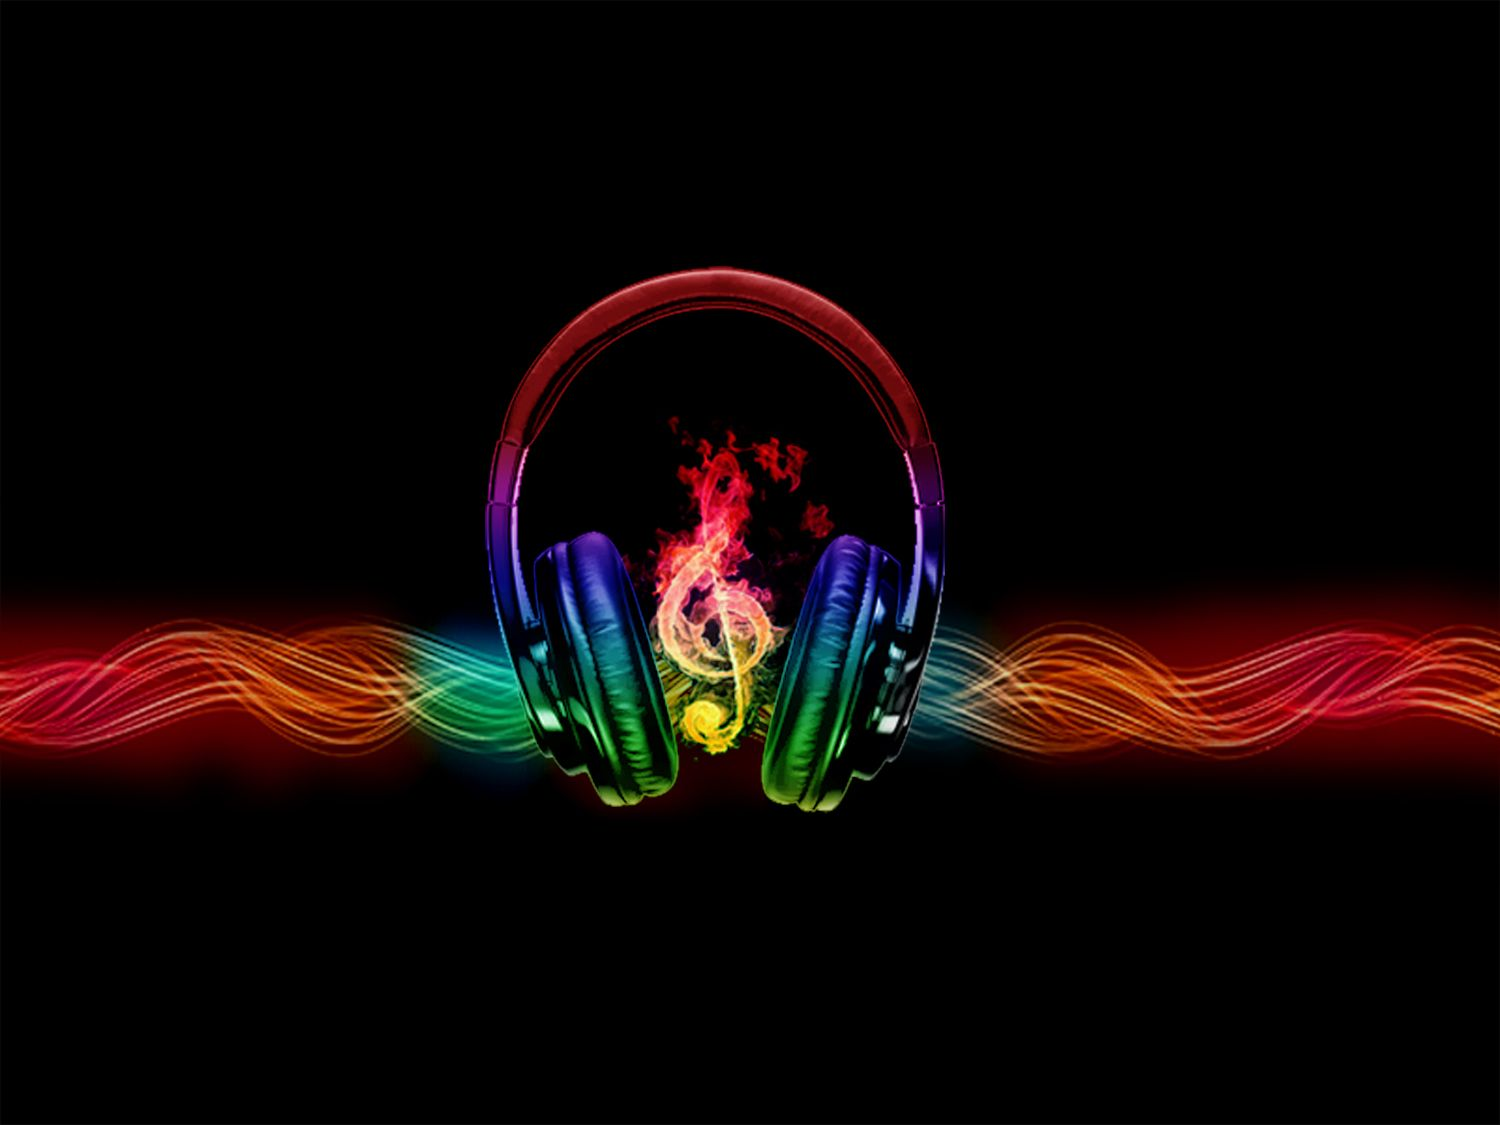 Cool Abstract Dj Music Wallpaper: Headphones With Music Wallpaper